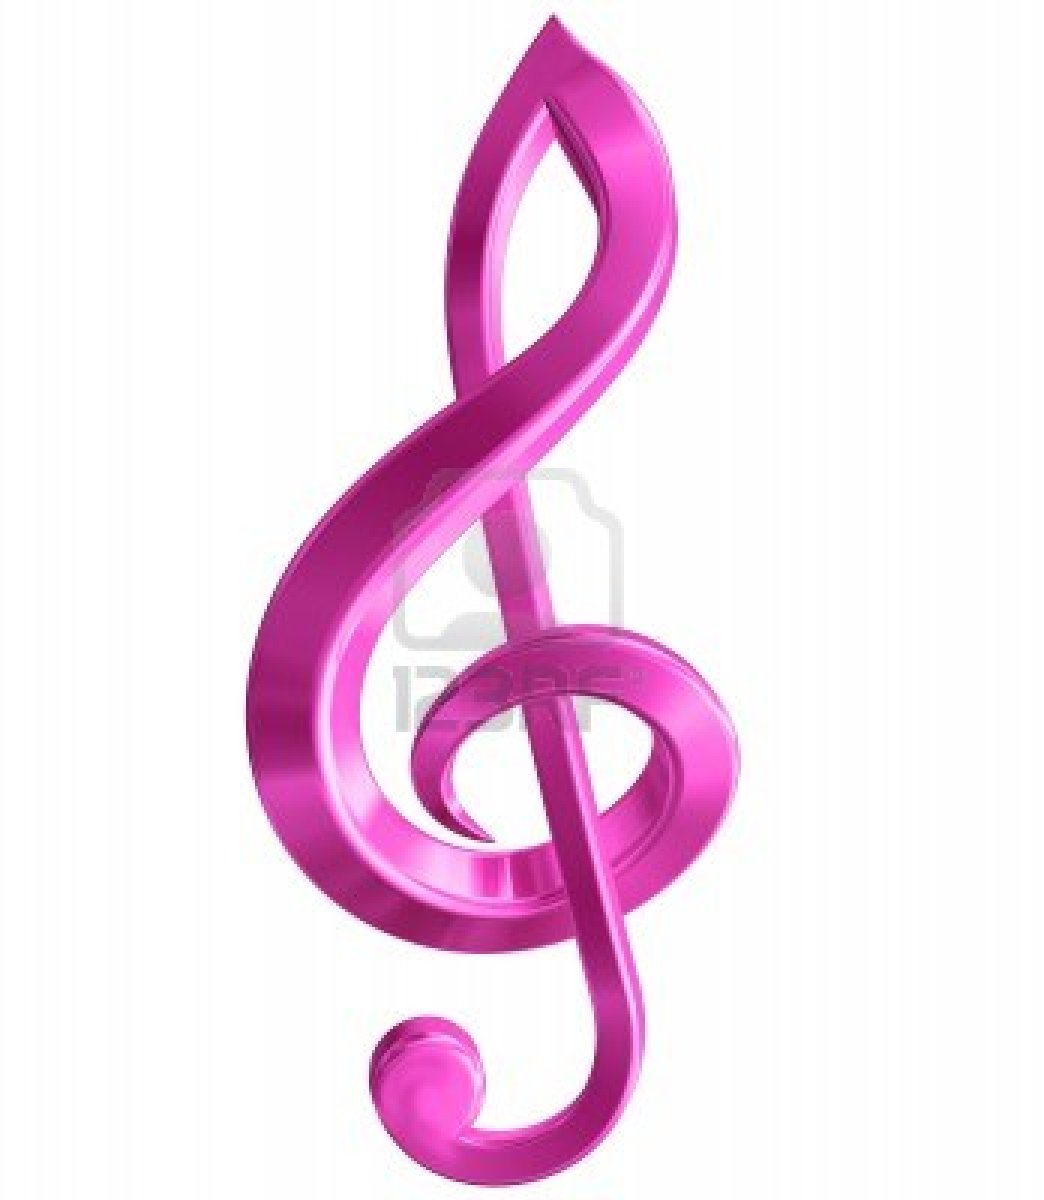 Colorful Music Notes Symbols Clipart Panda Free Clipart Images